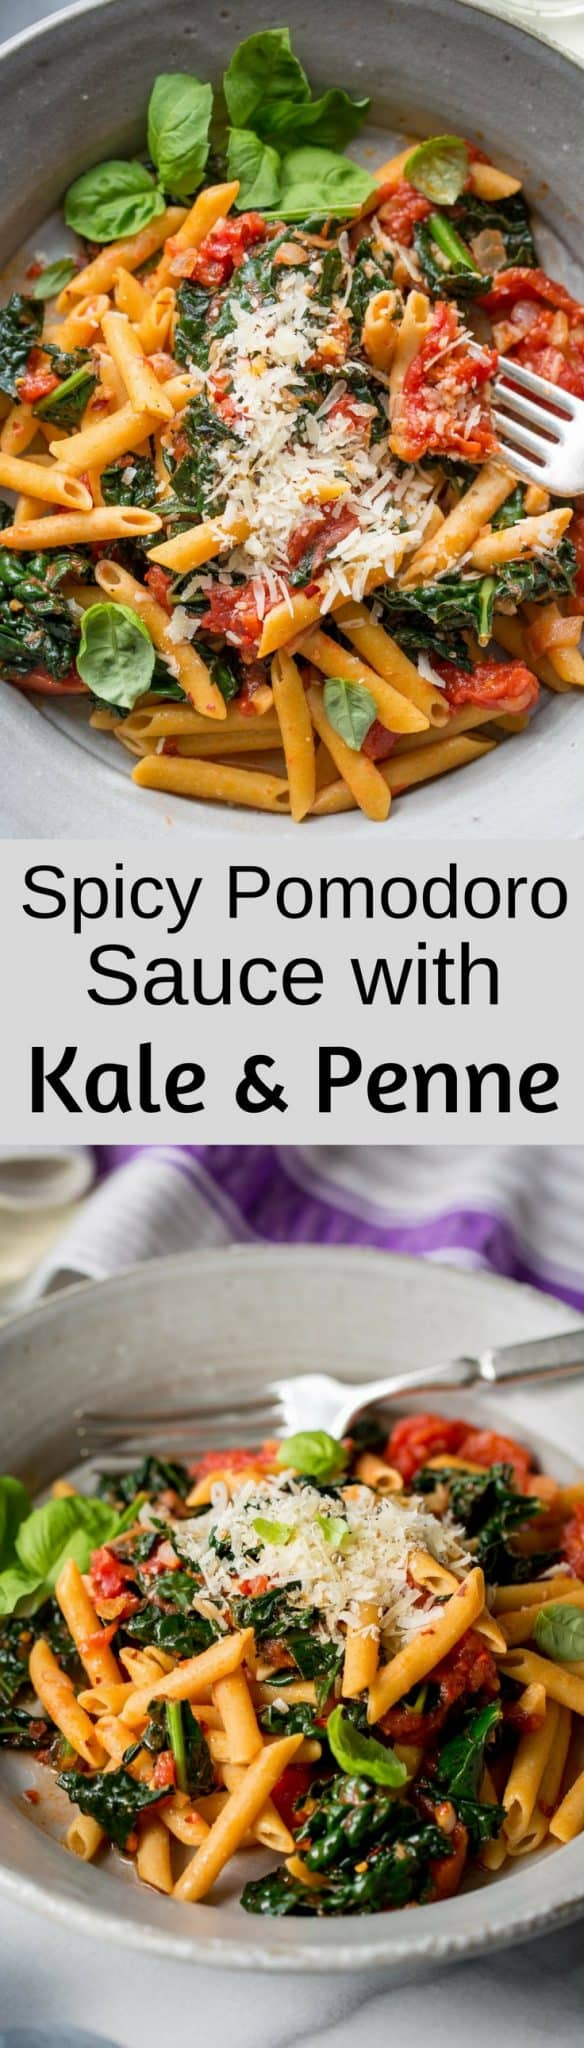 Spicy Pomodoro Sauce with Kale & Penne - Saving Room for